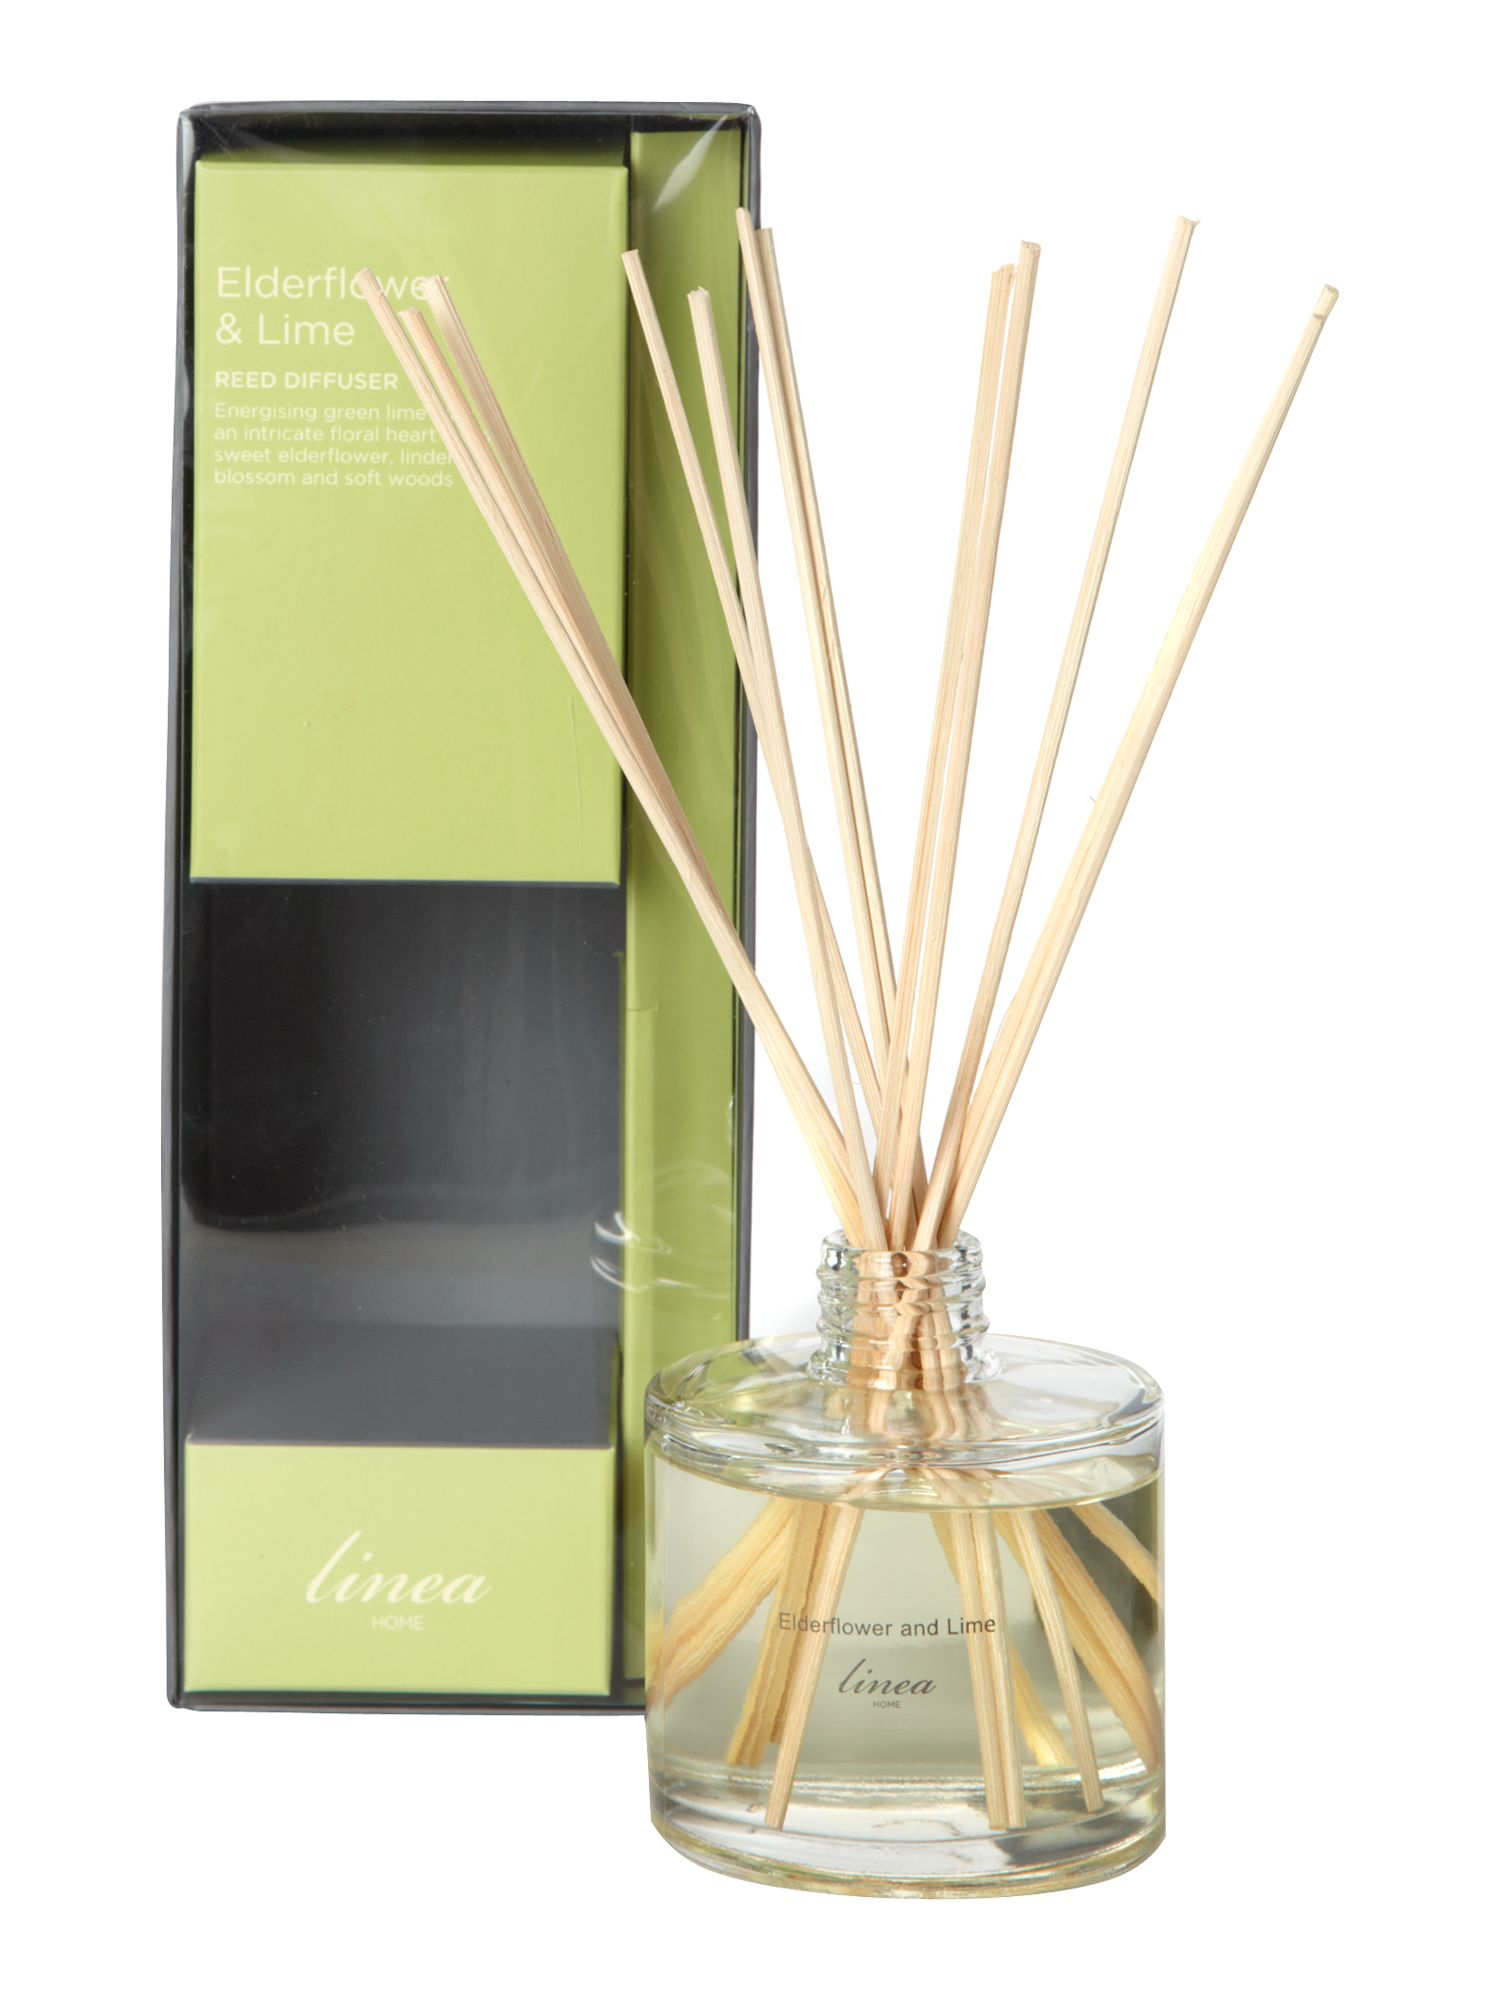 Elderflower and lime diffuser